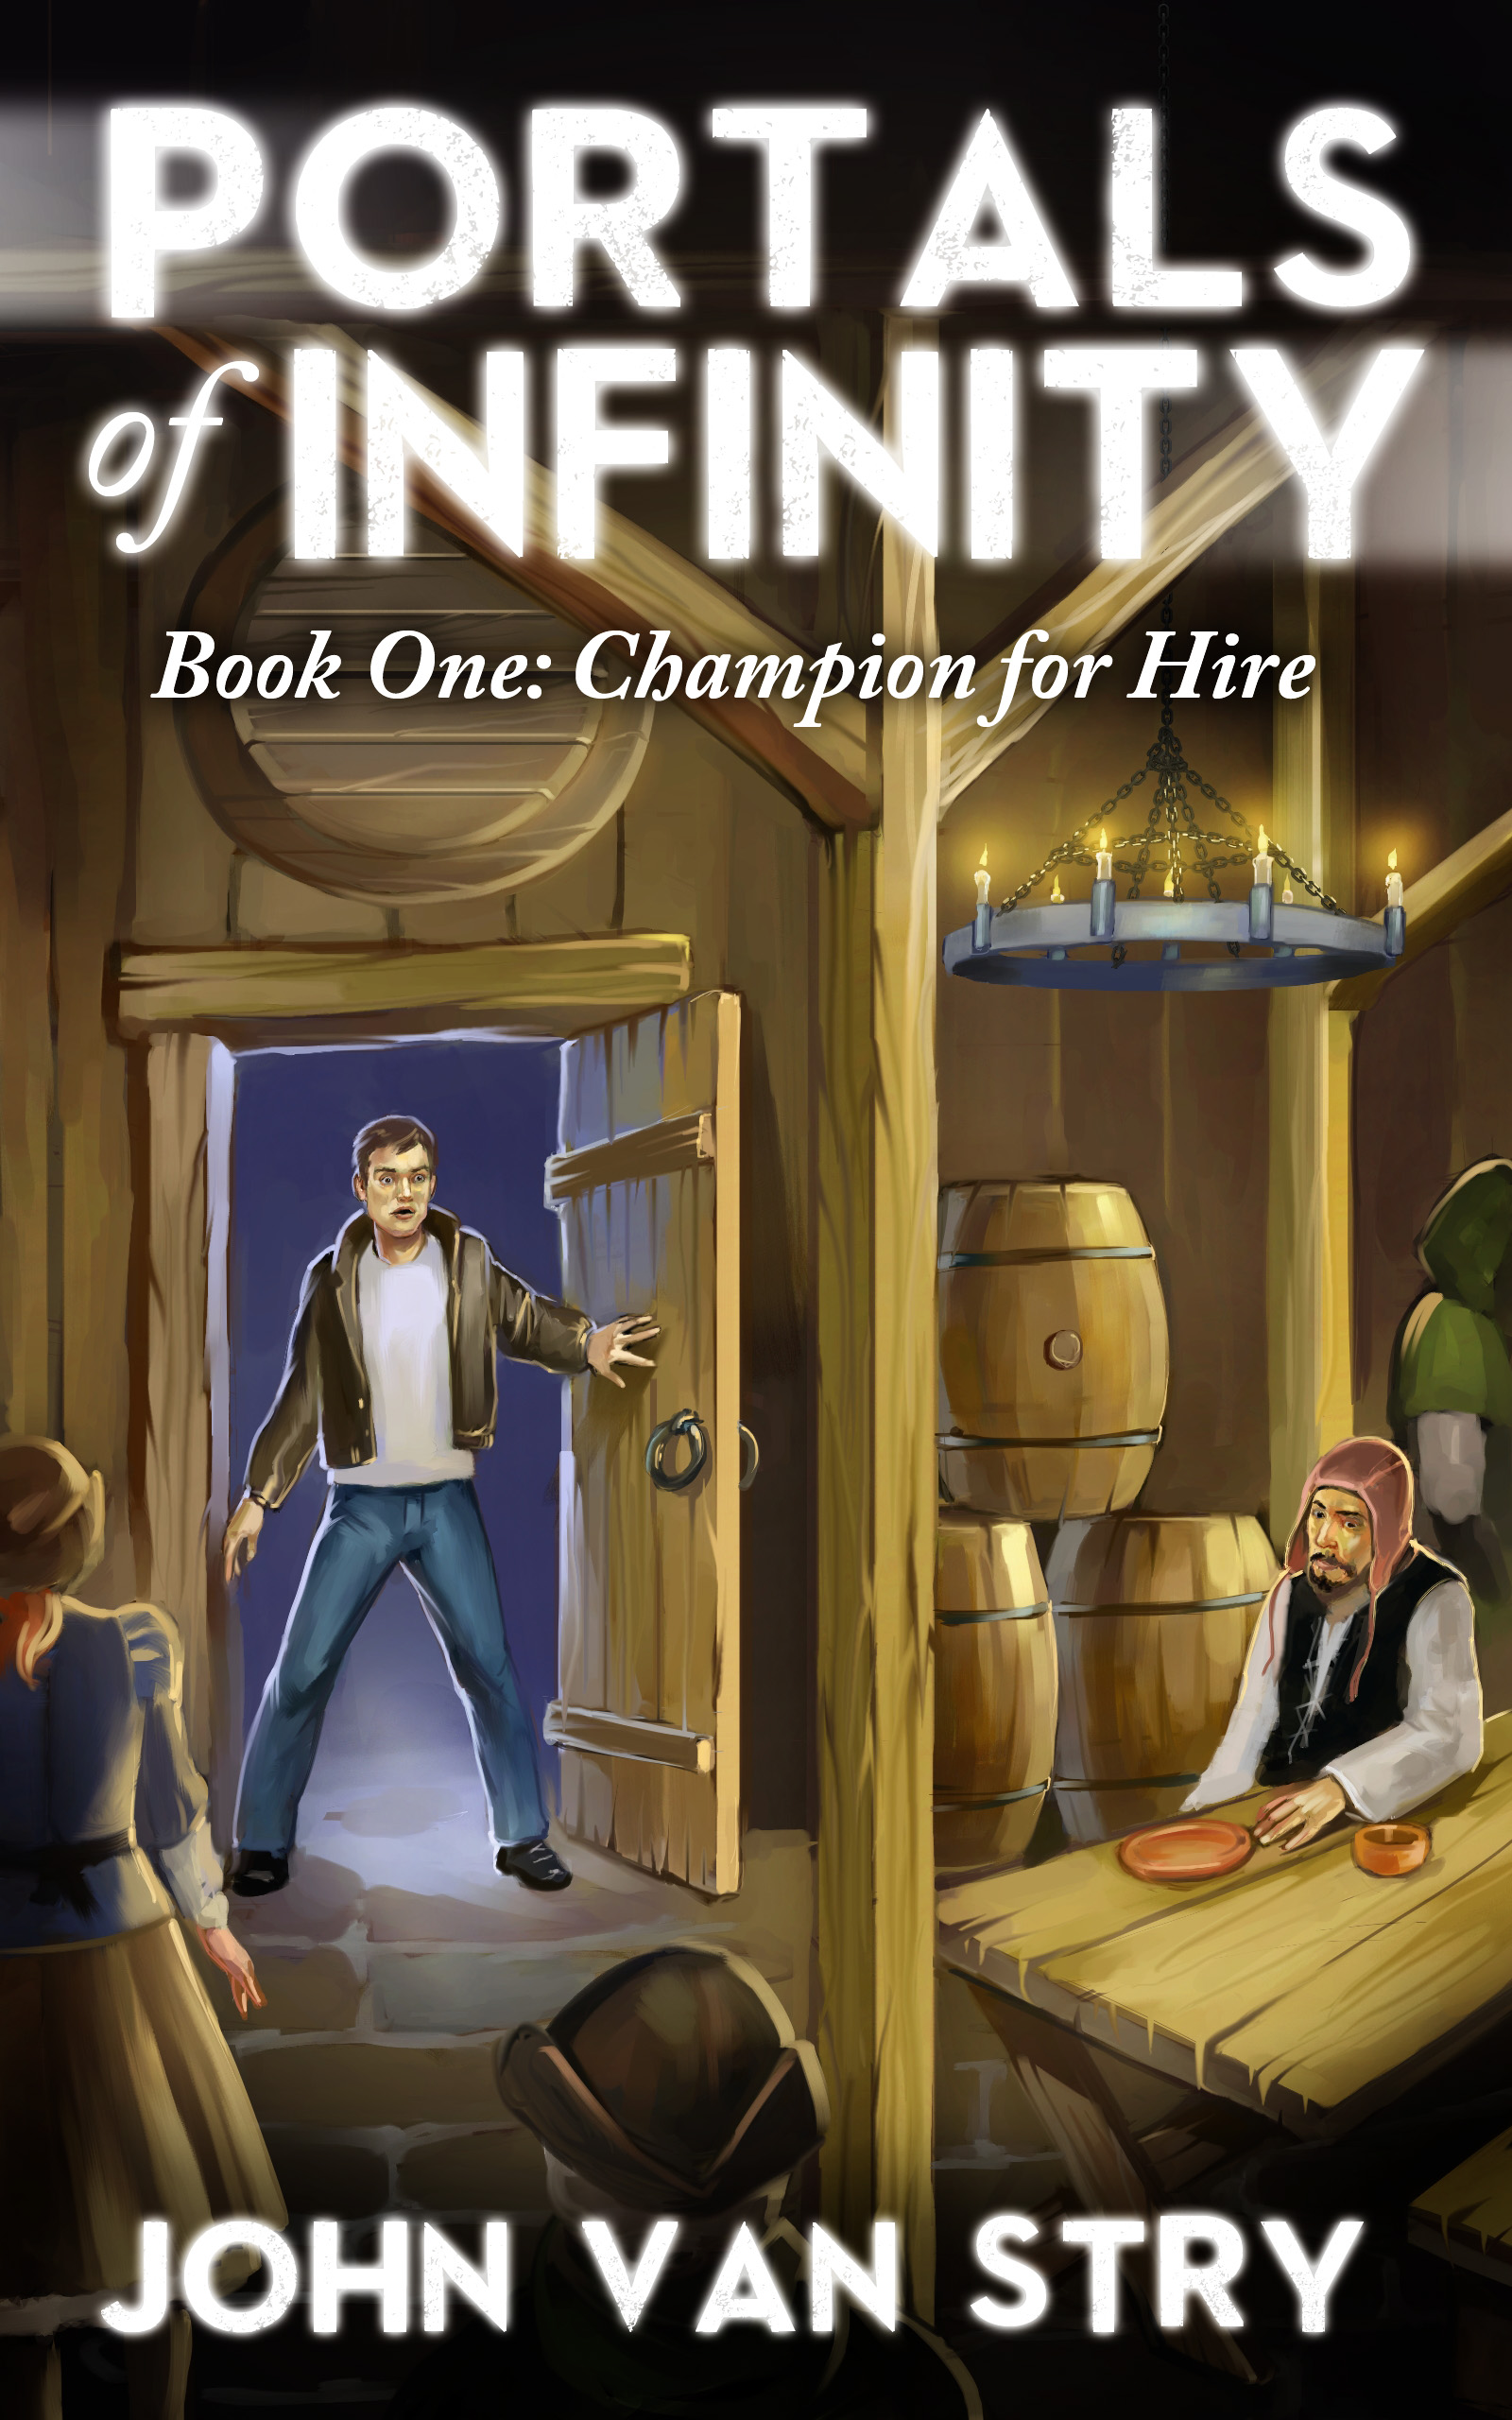 John Van Stry - Portals of Infinity, Book One: Champion for Hire